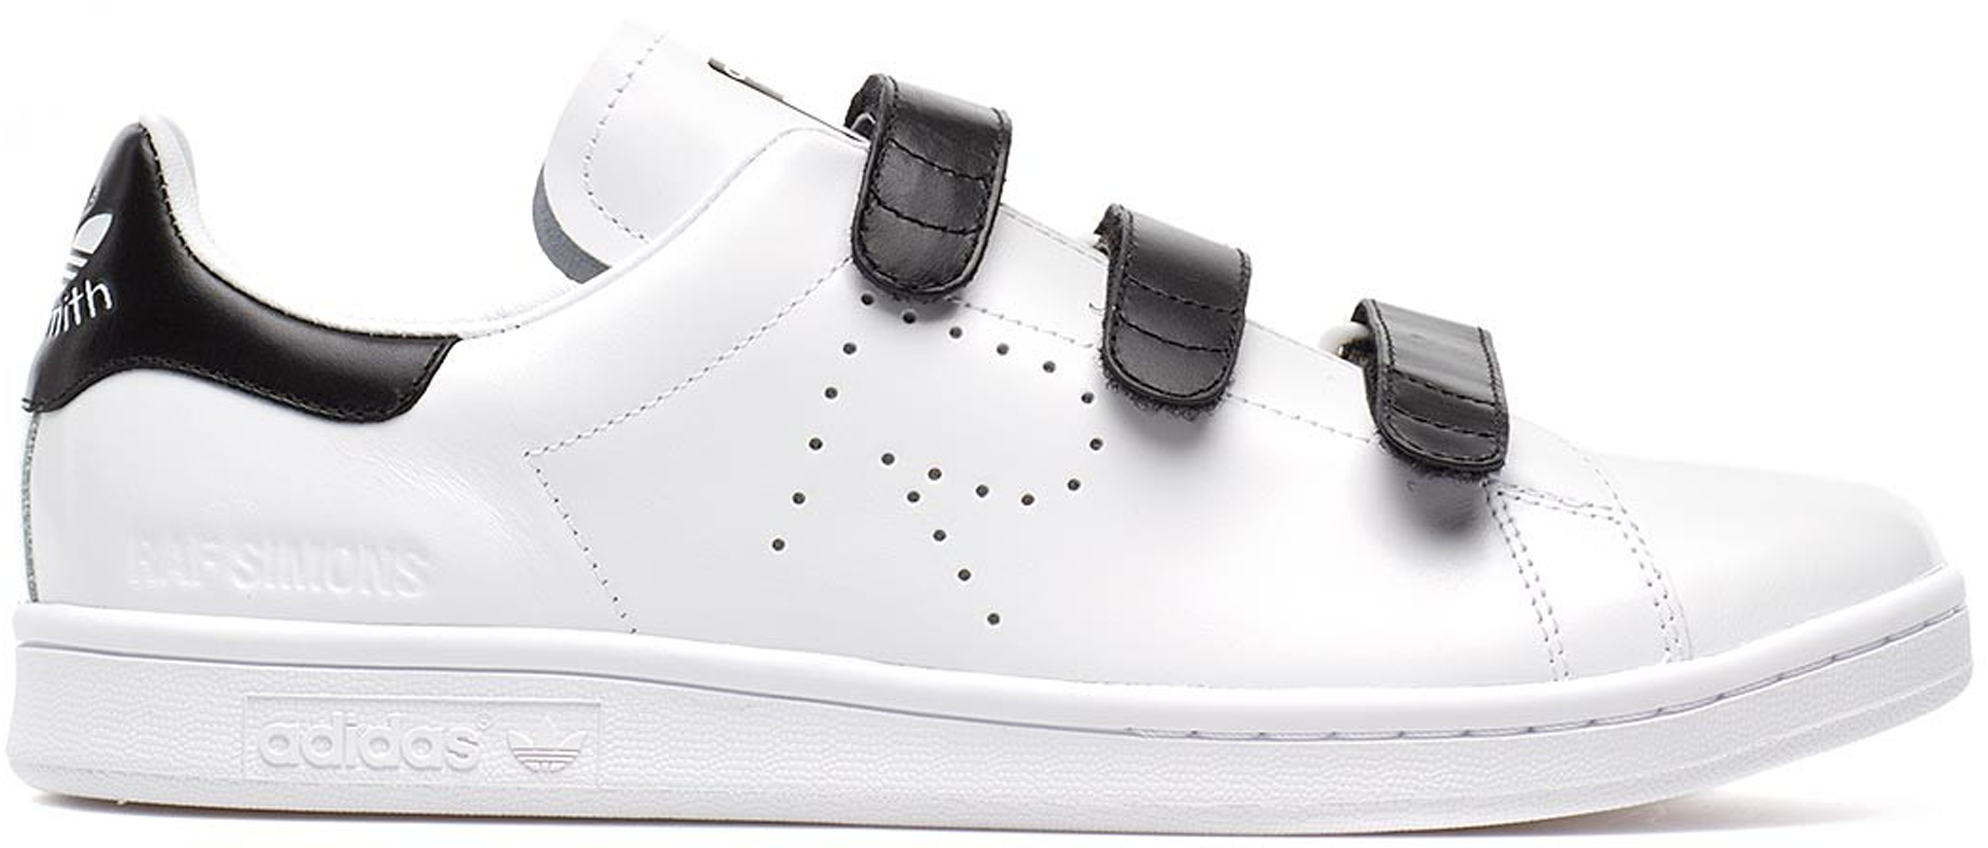 adidas Stan Smith Raf Simons Comfort White Black